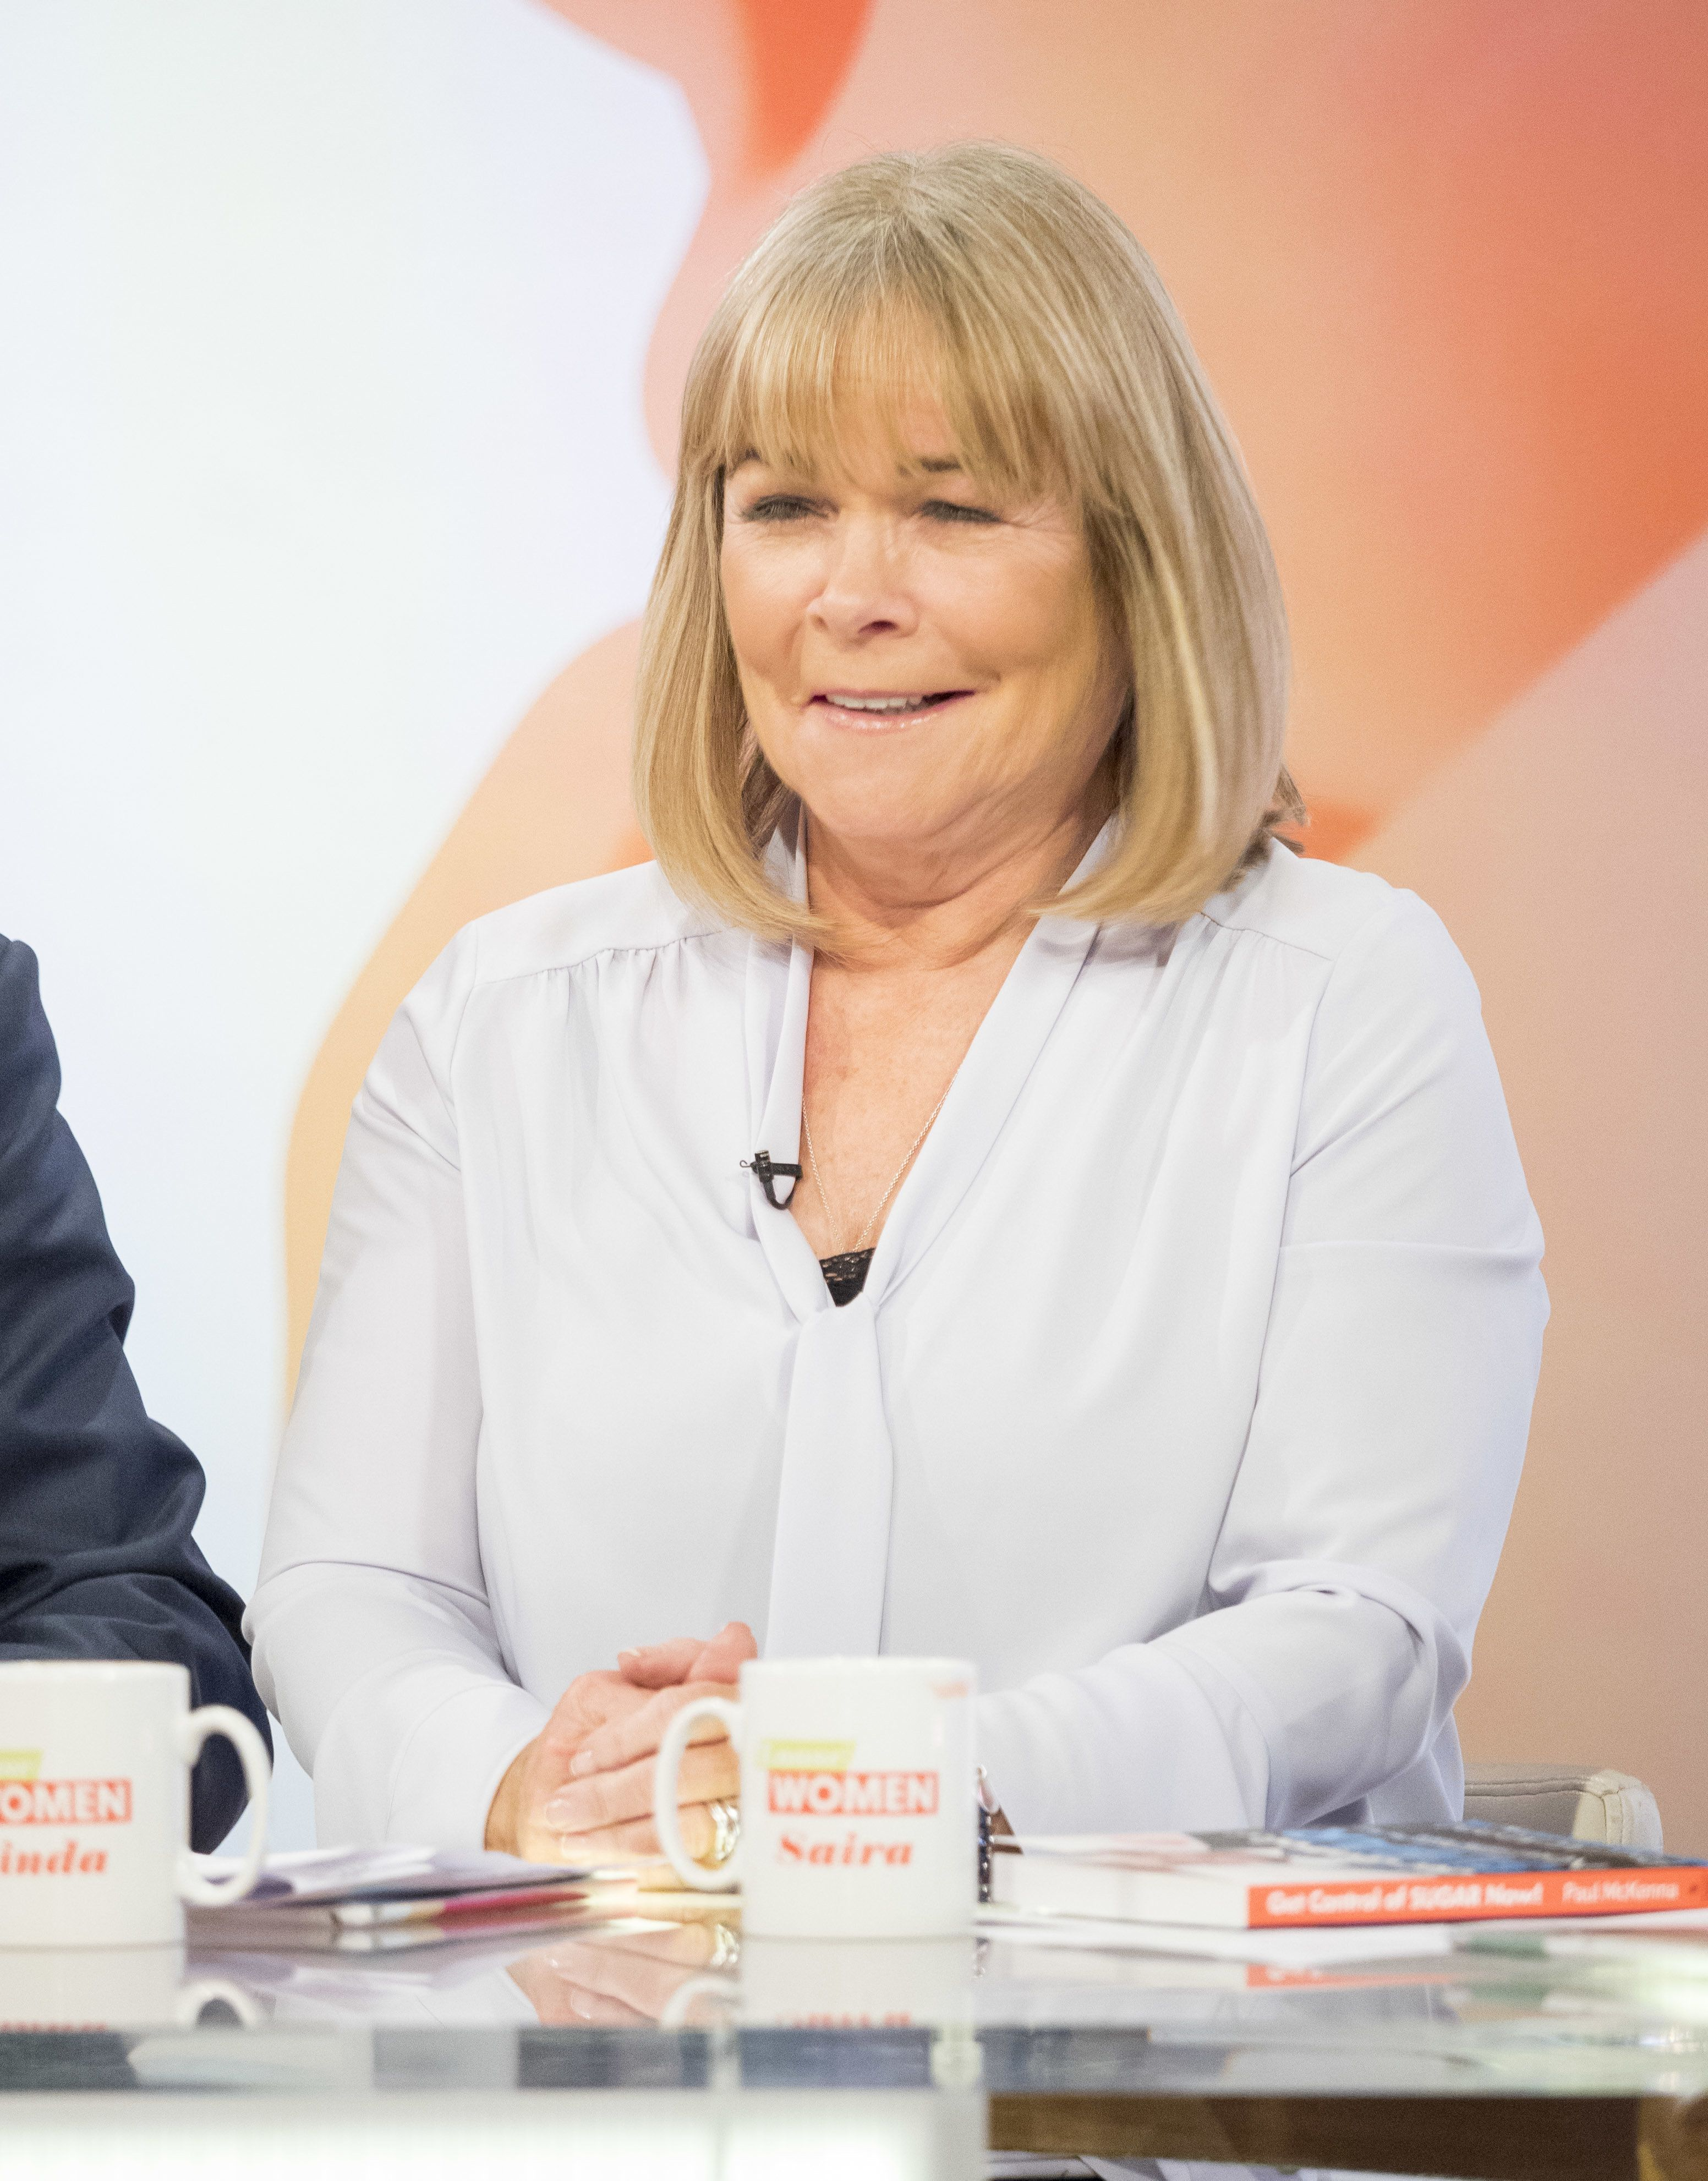 Linda Robson Issues Apology After 'Loose Women' Comments Lead To Ofcom